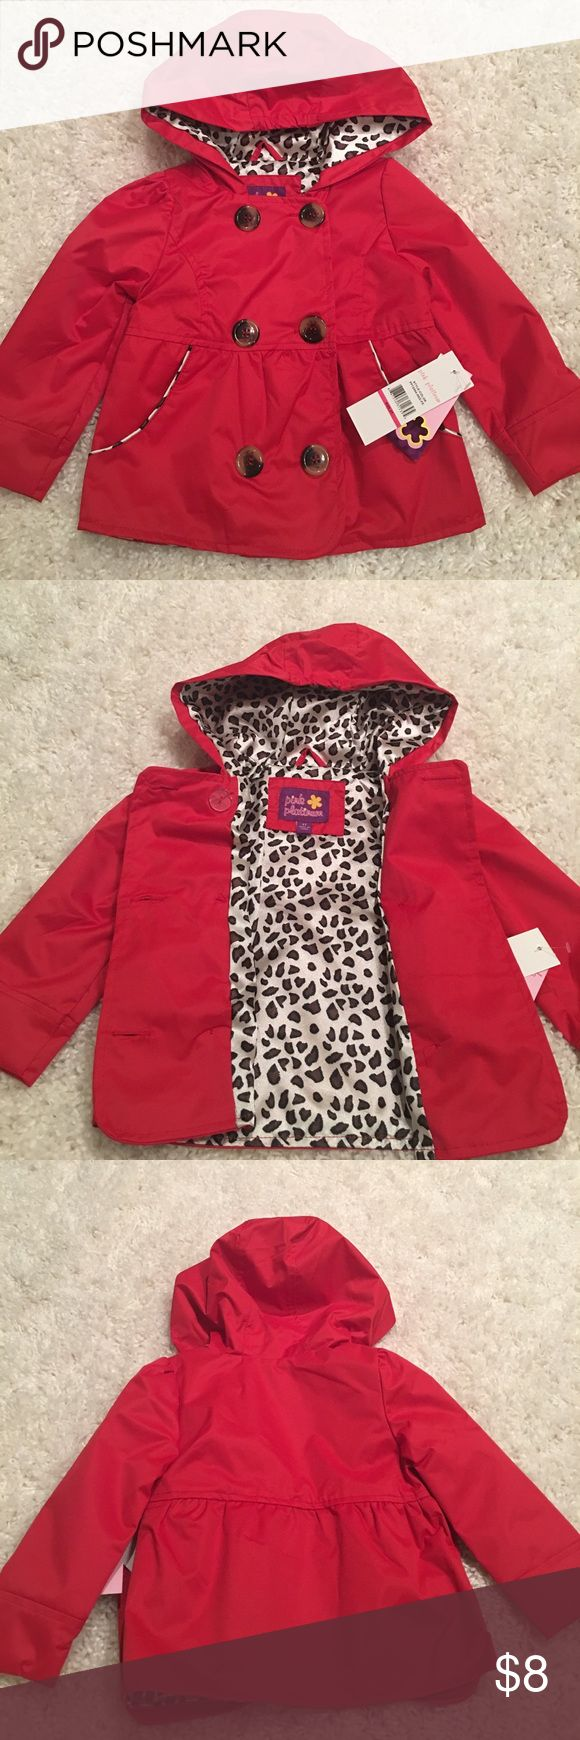 Red stylish rain coat Red, stylish raincoat with hood and animal print lining. Size 2T. Brand new with tags. Pink Platinum Jackets & Coats Raincoats